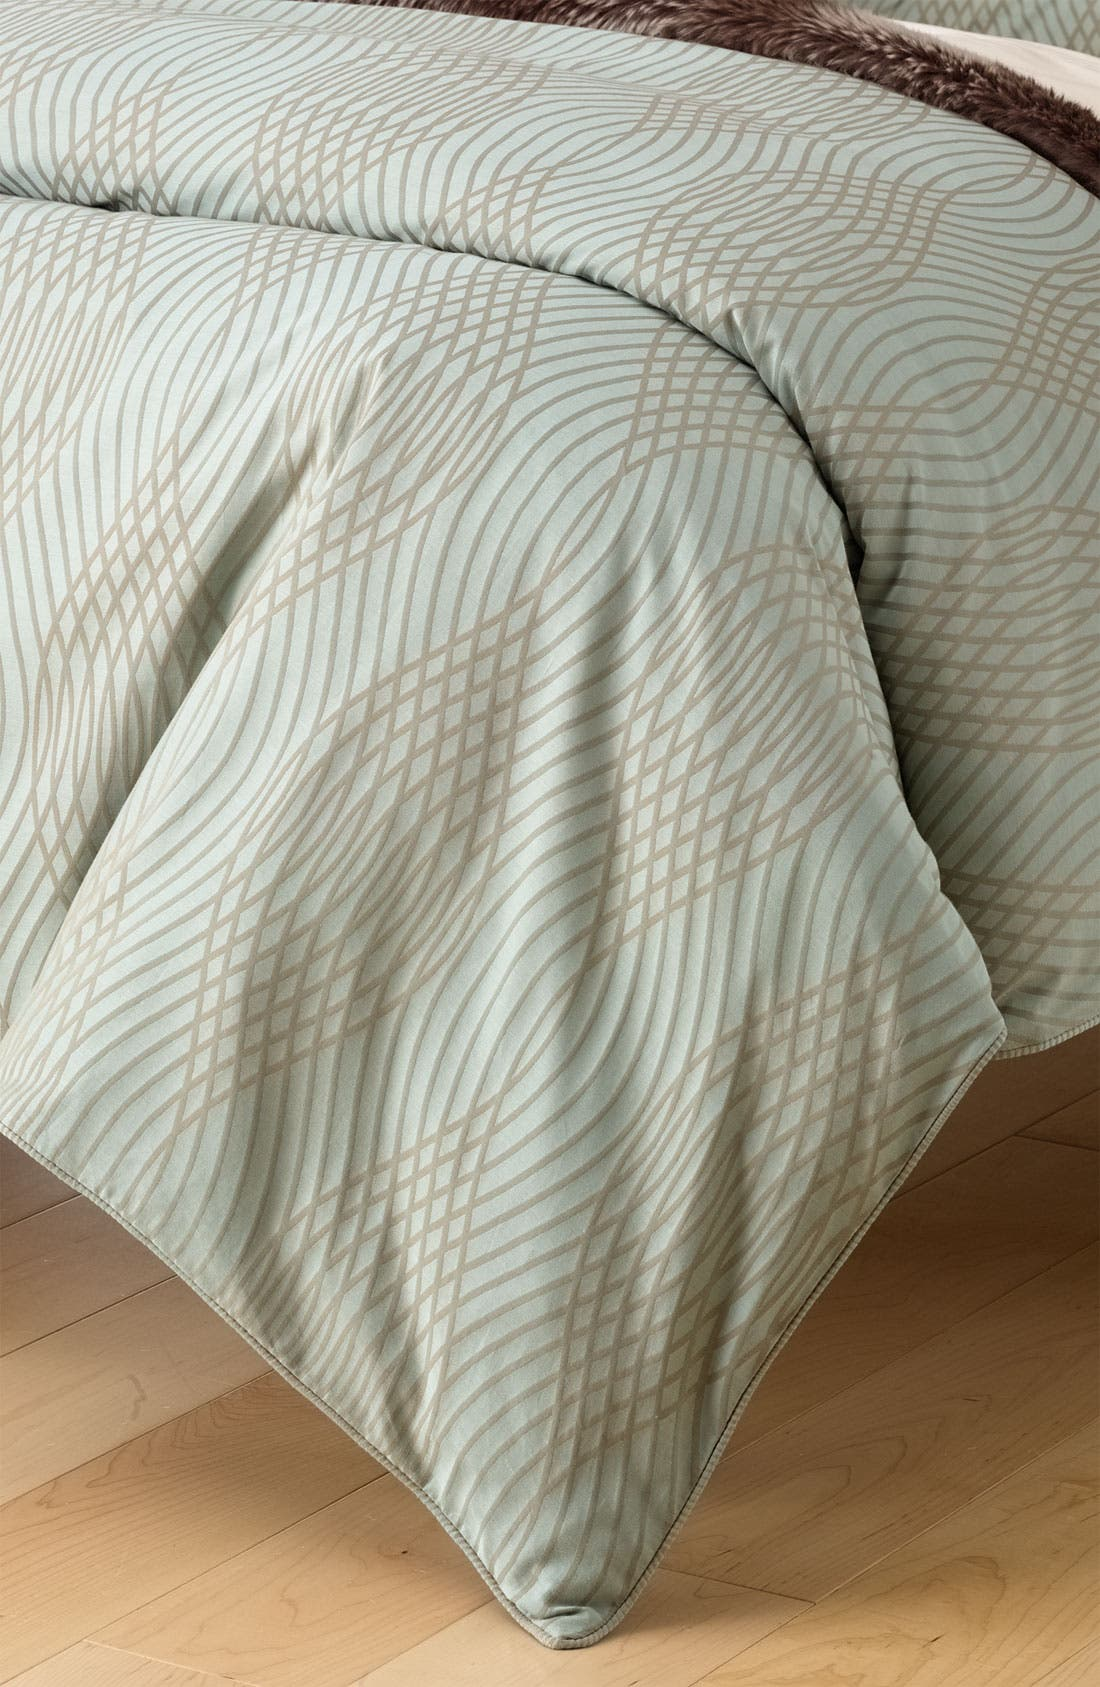 Main Image - Nordstrom at Home 'Nouveau Wave' 300 Thread Count Duvet Cover